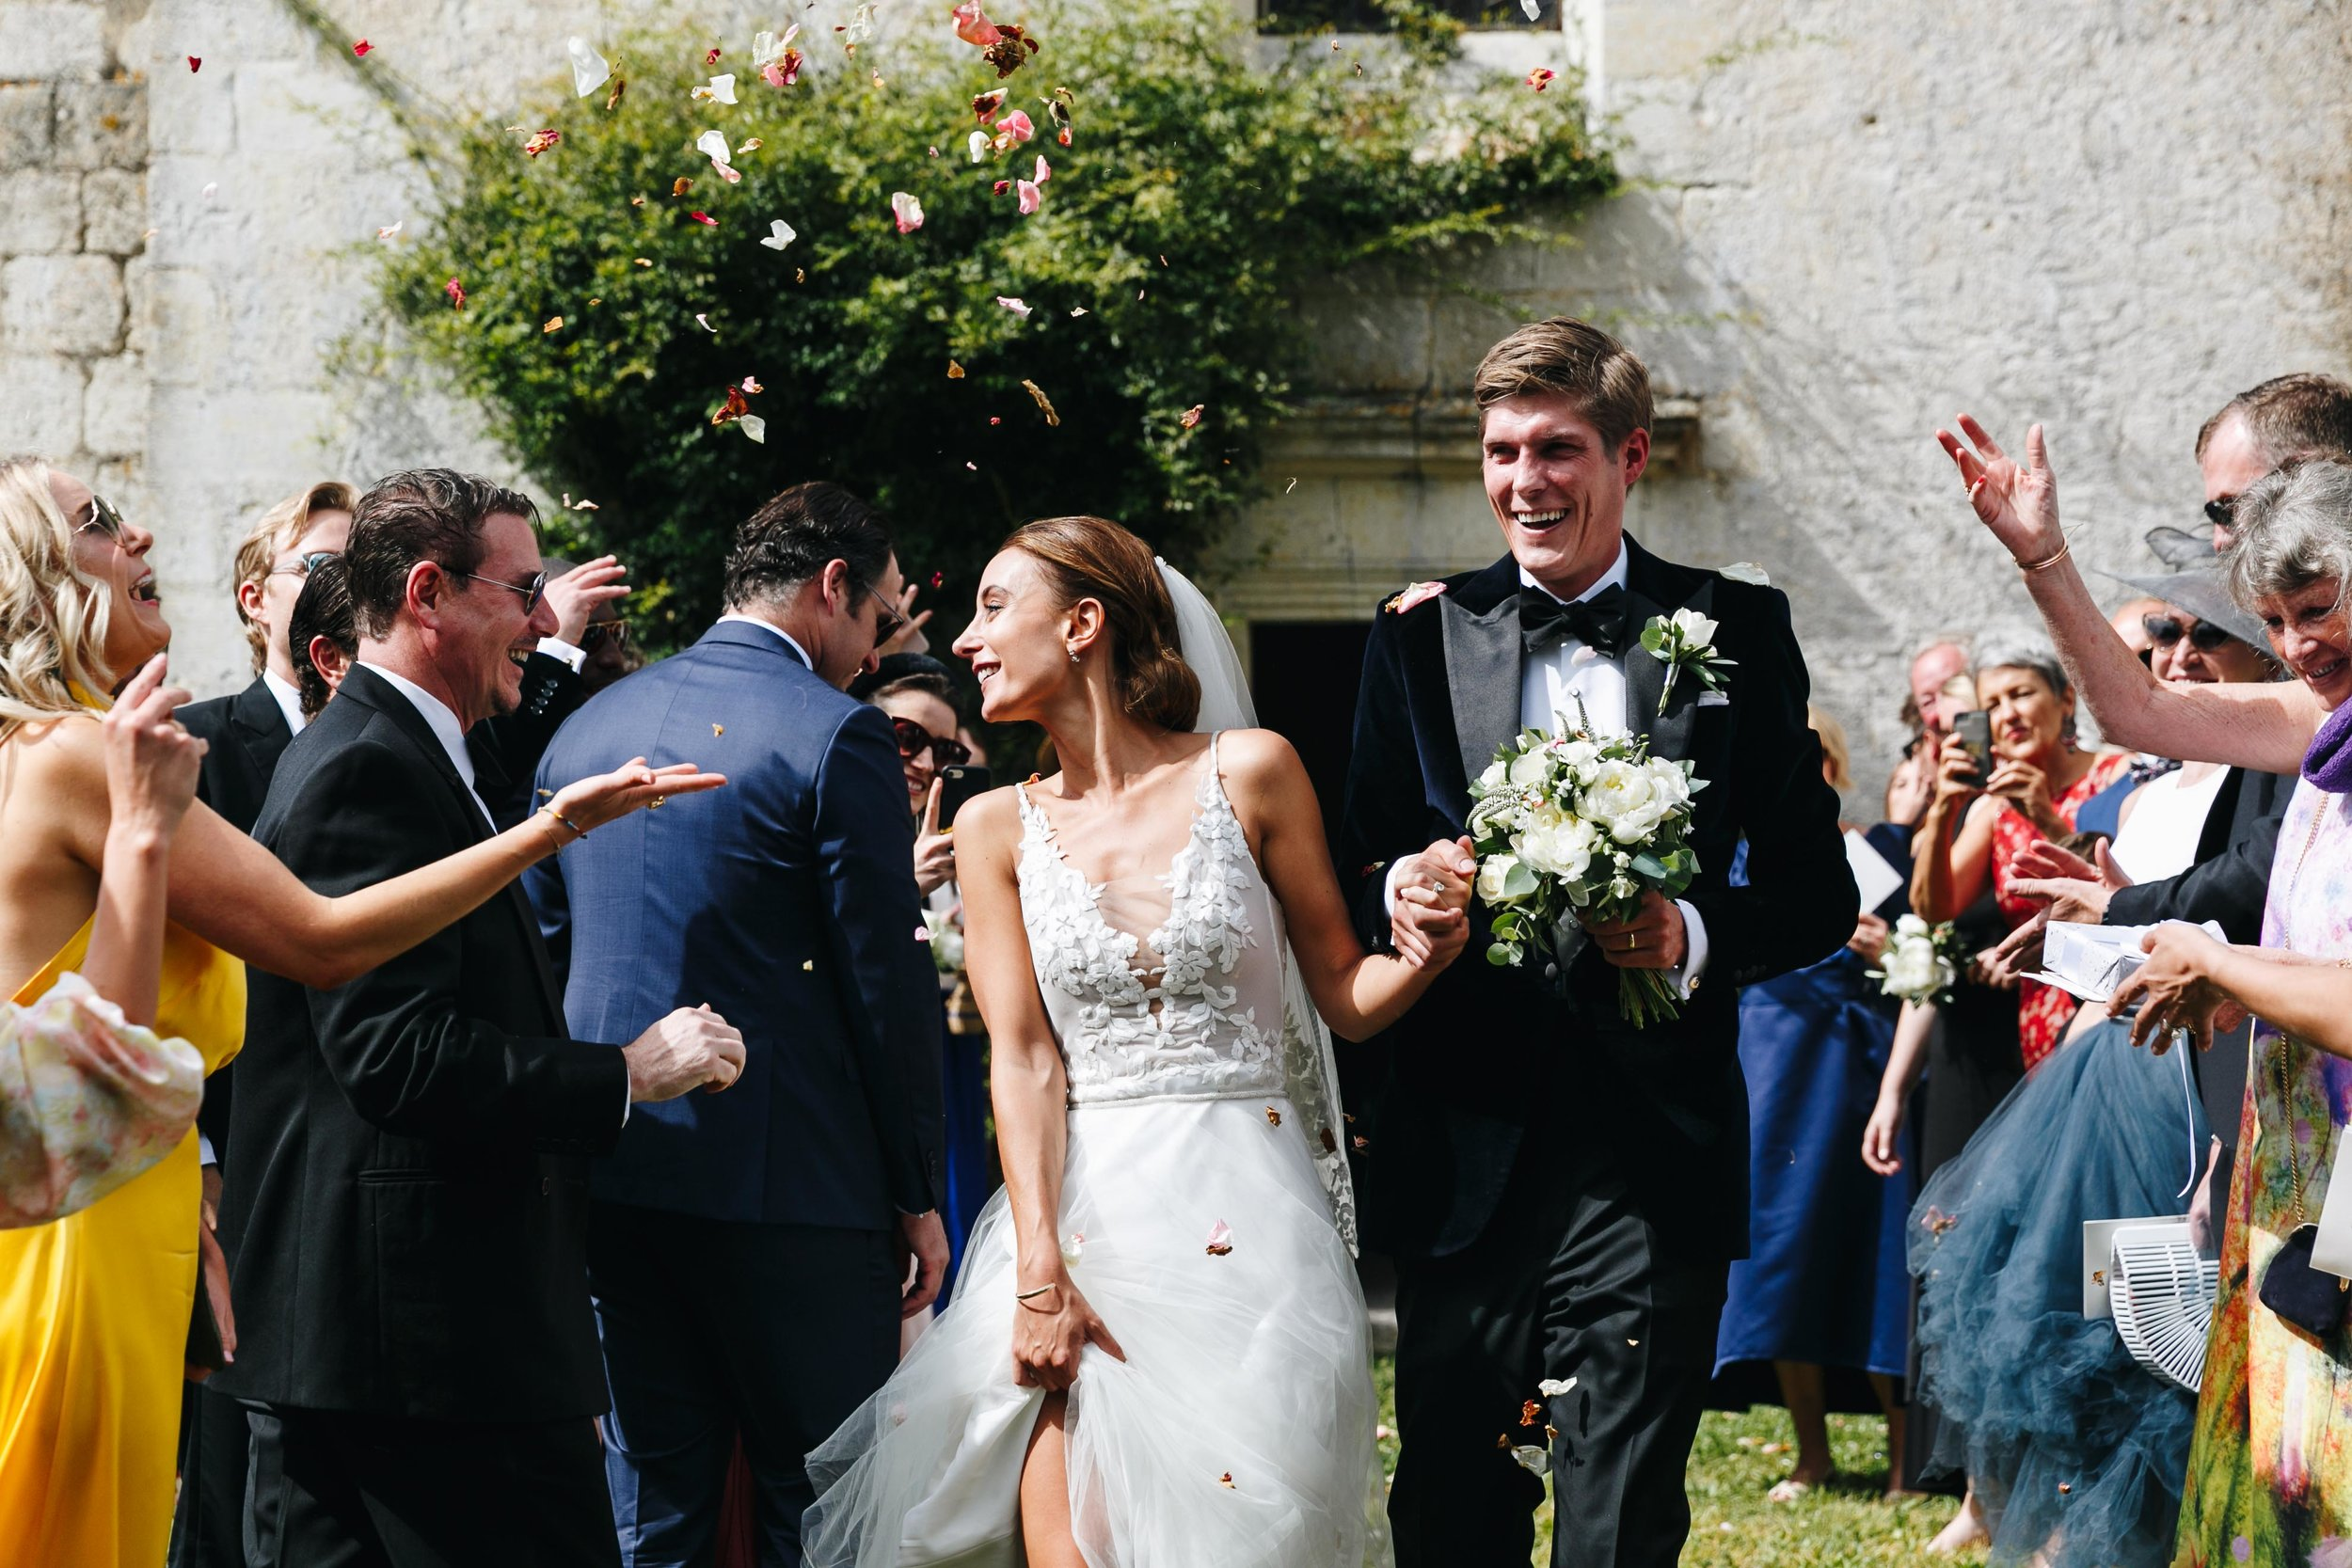 Steph Max South of France Wedding lr-311.jpg